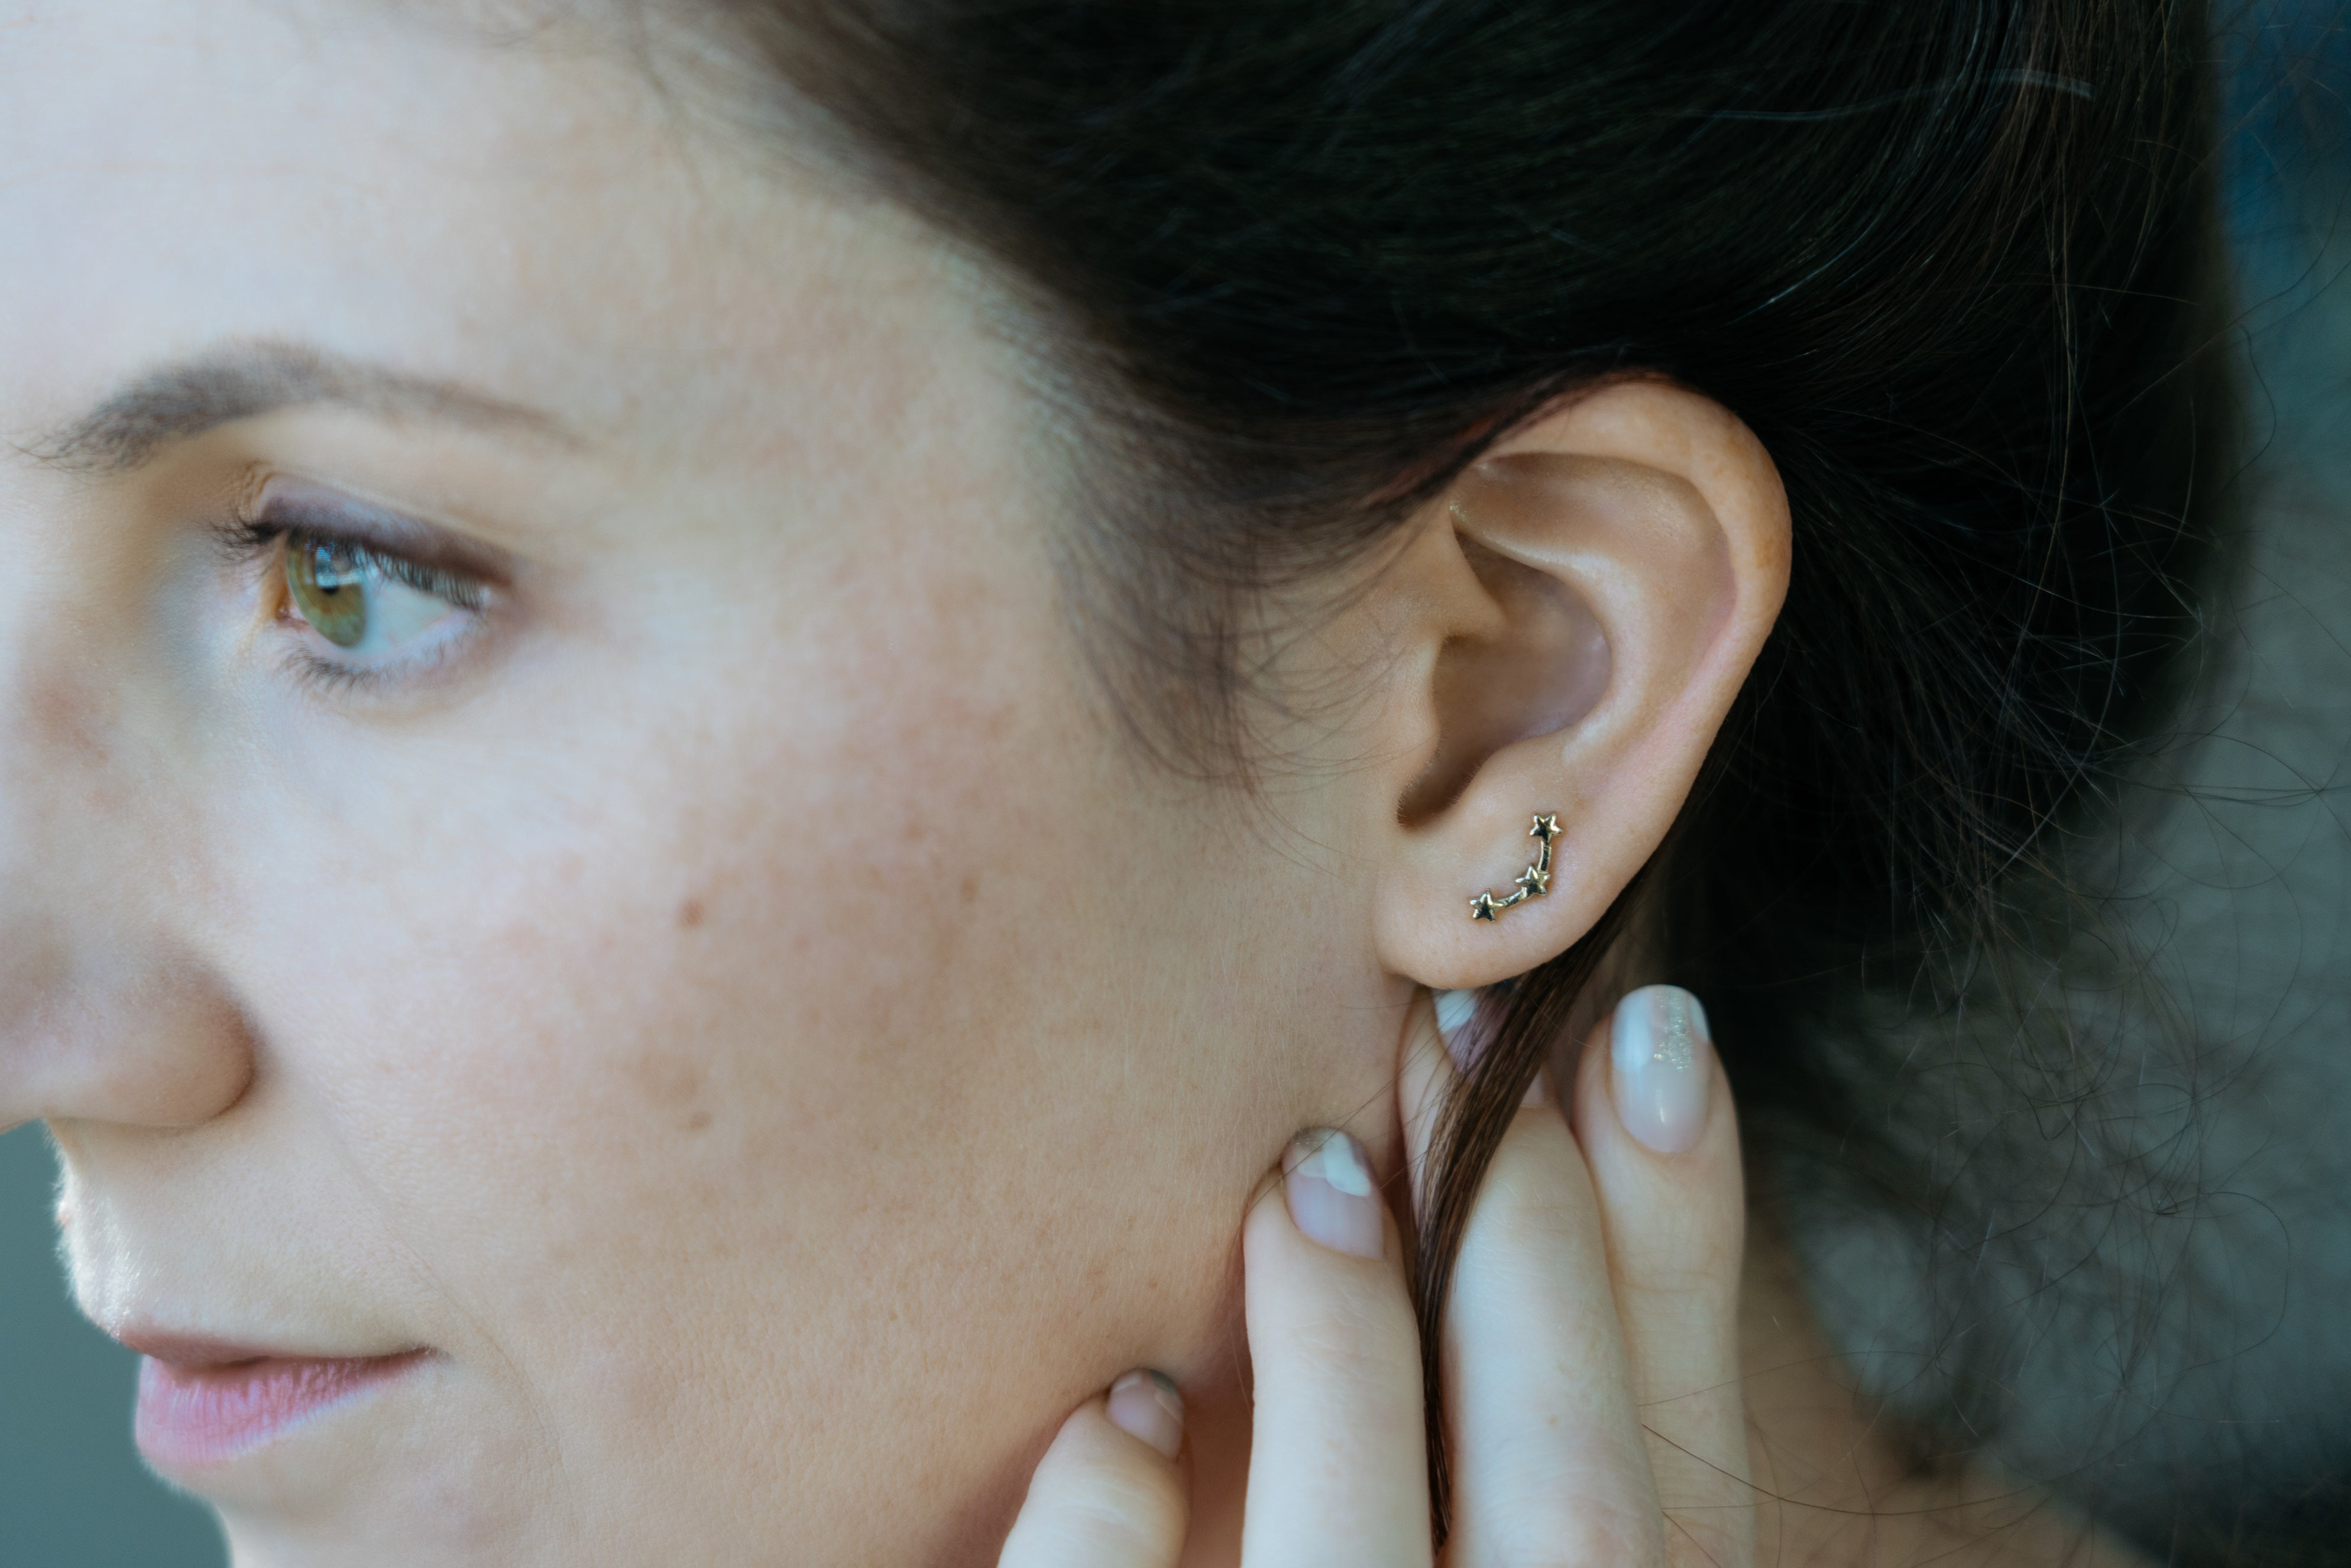 girl touching ear with gold star ear climbers